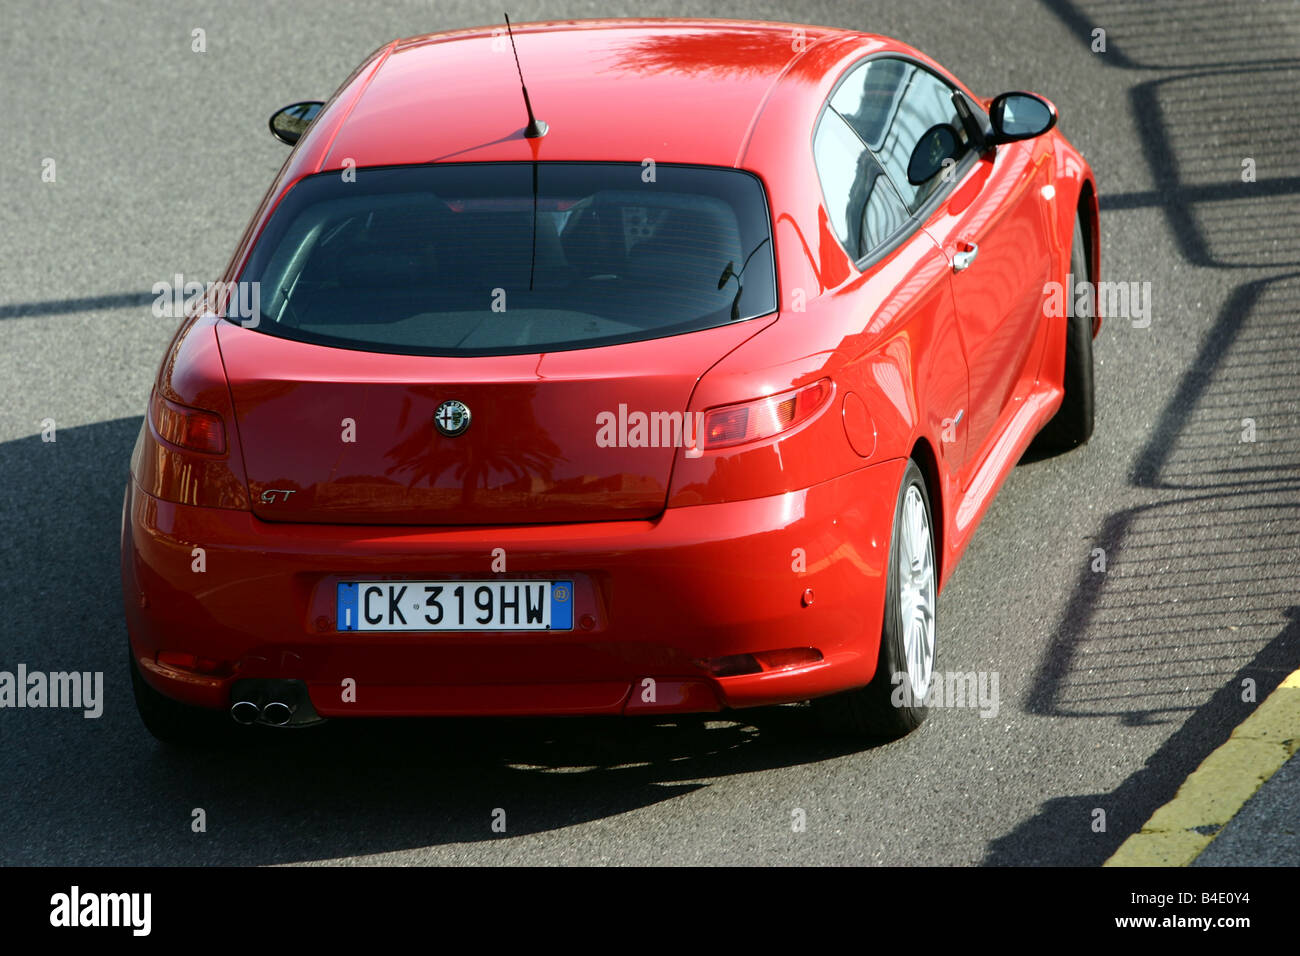 Car Alfa Romeo Gt 3 2 V6 Roadster Coupe Coupe Red Model Year Stock Photo Alamy